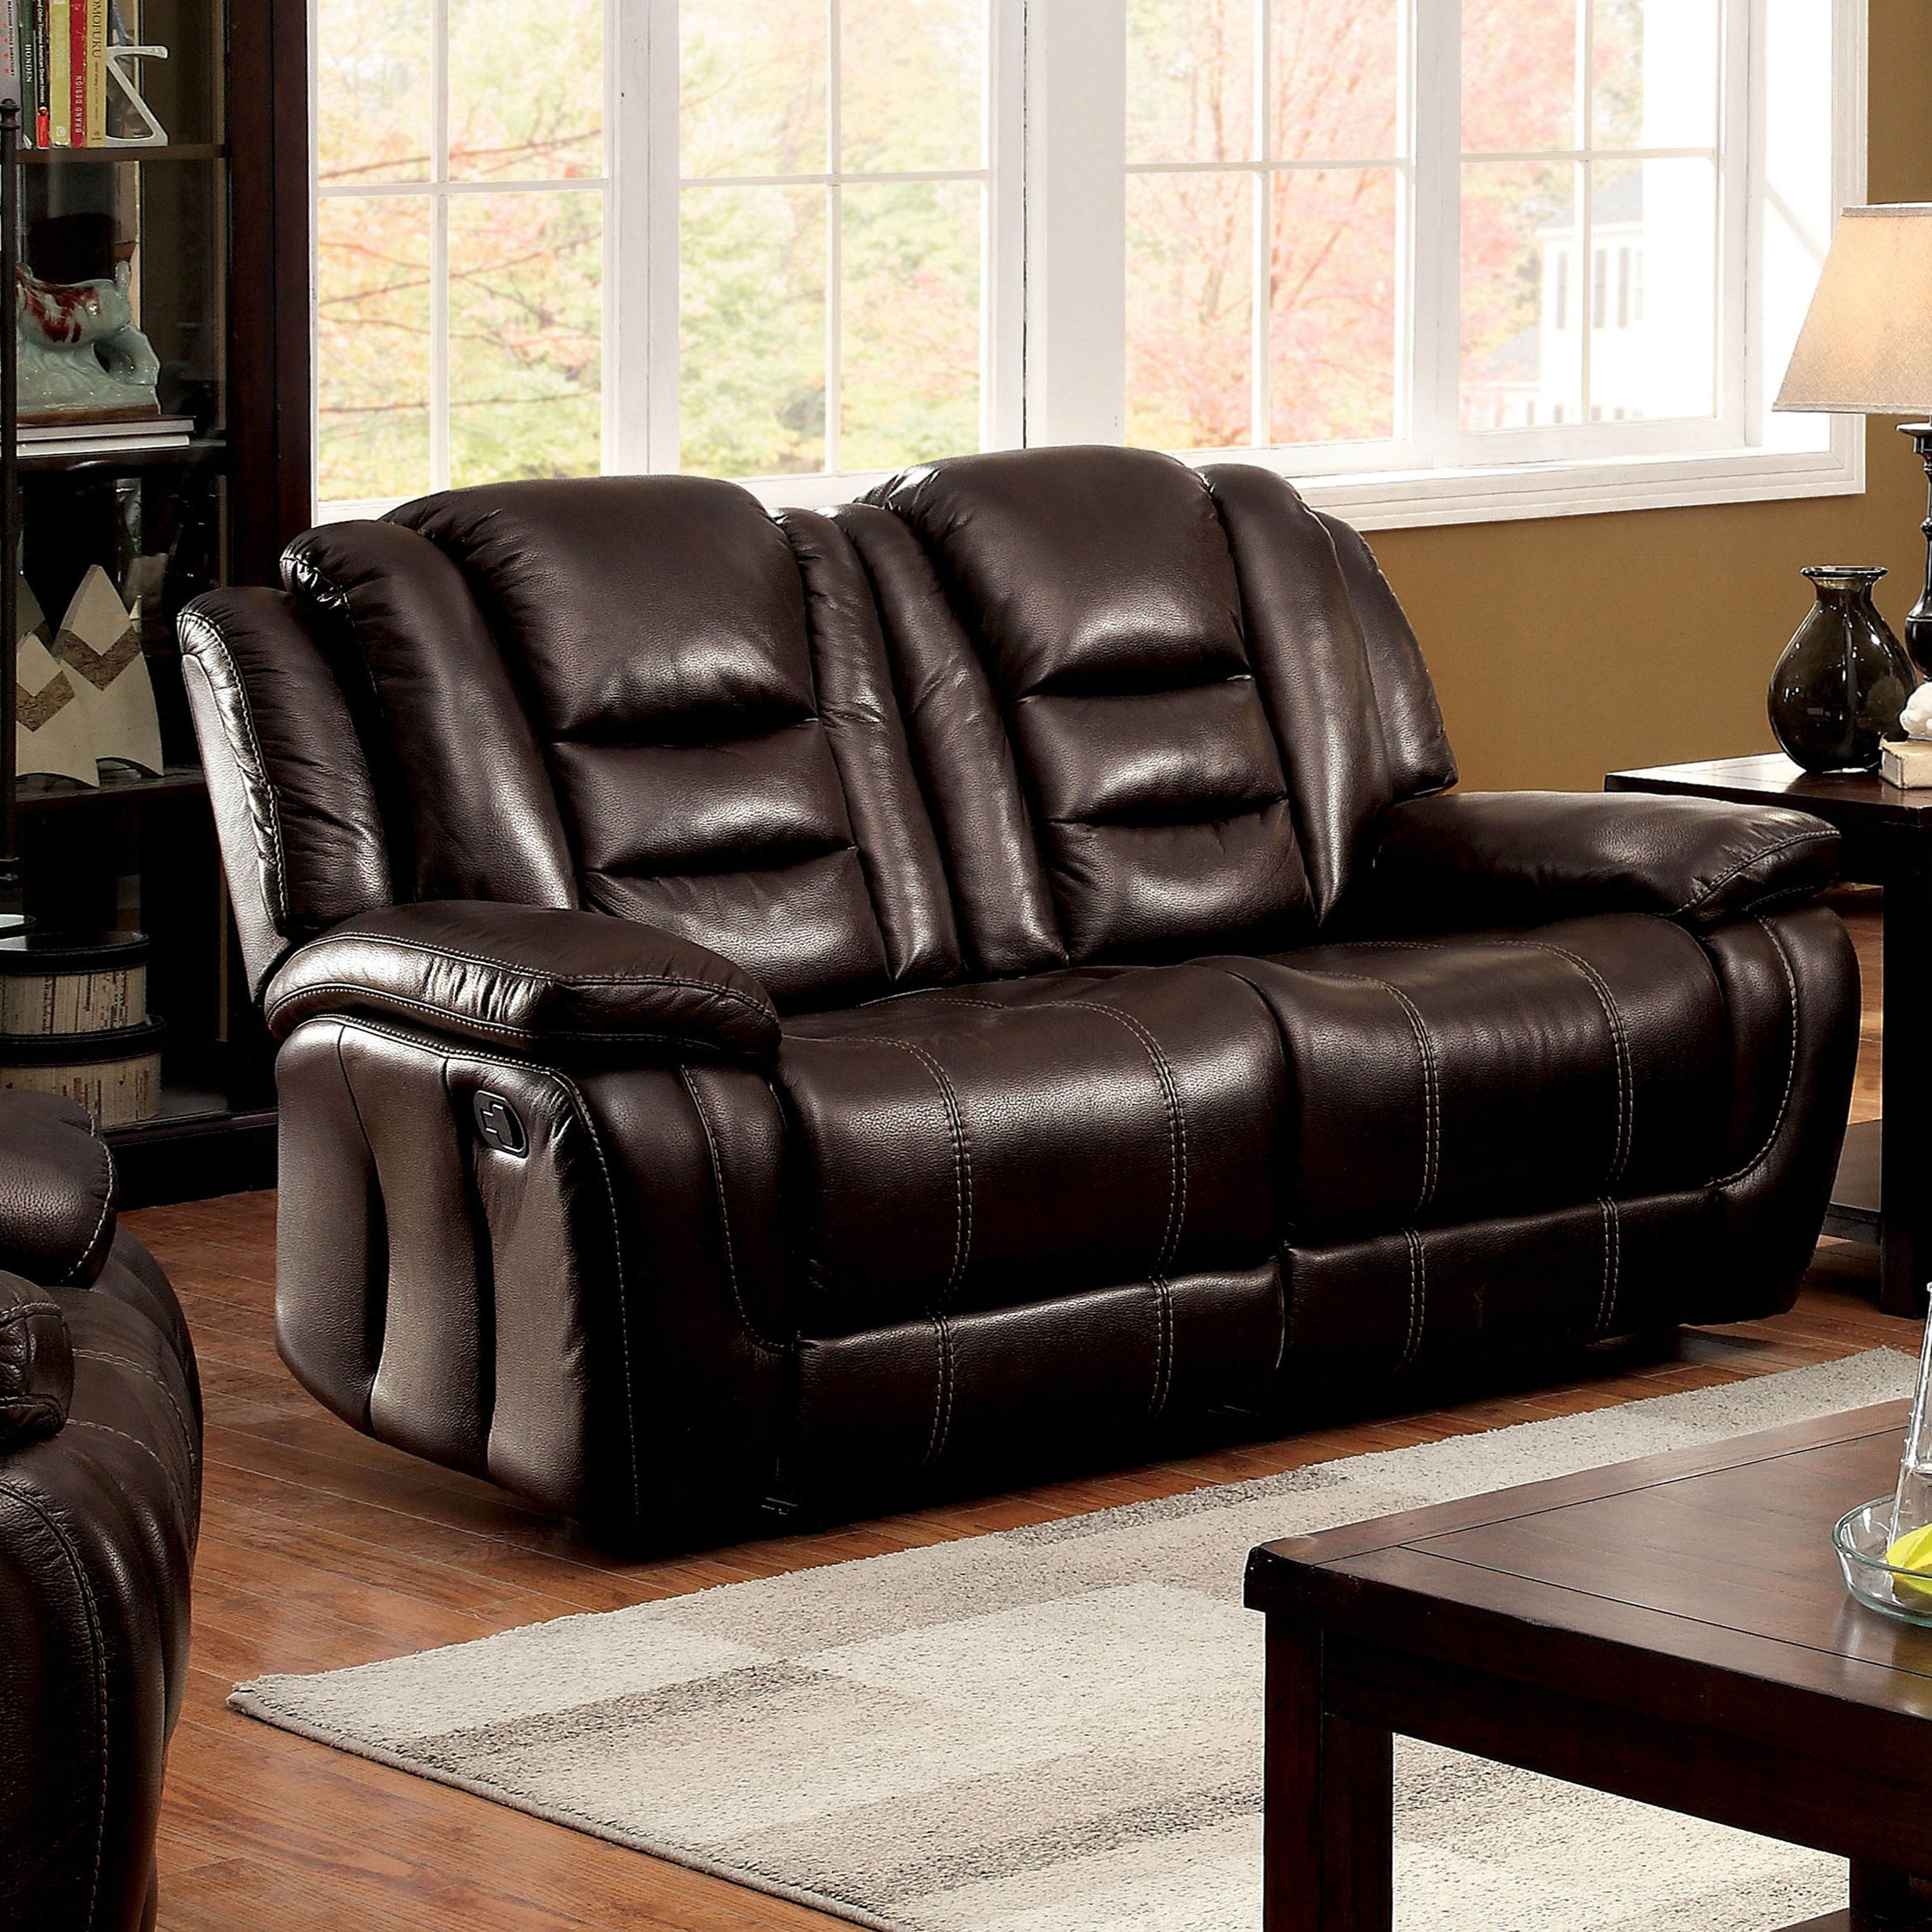 Omnia Furniture Torre Leather Chair Products Pinterest